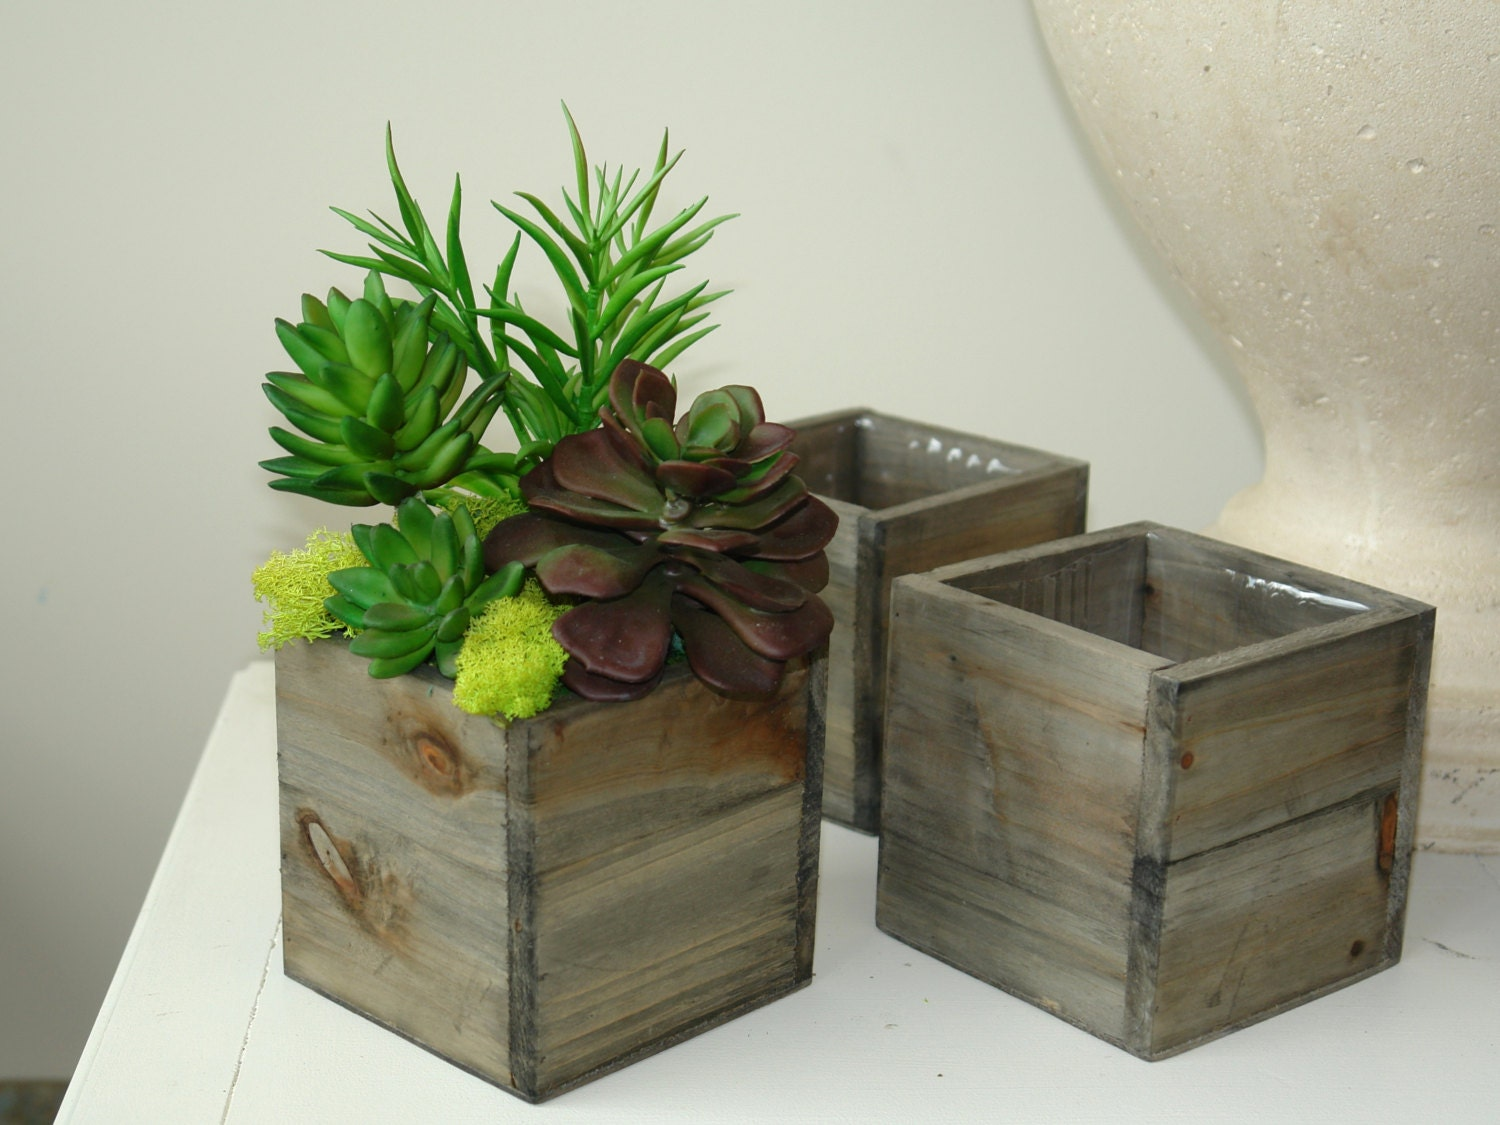 Wood box boxes square vase succulents by aniamelisa